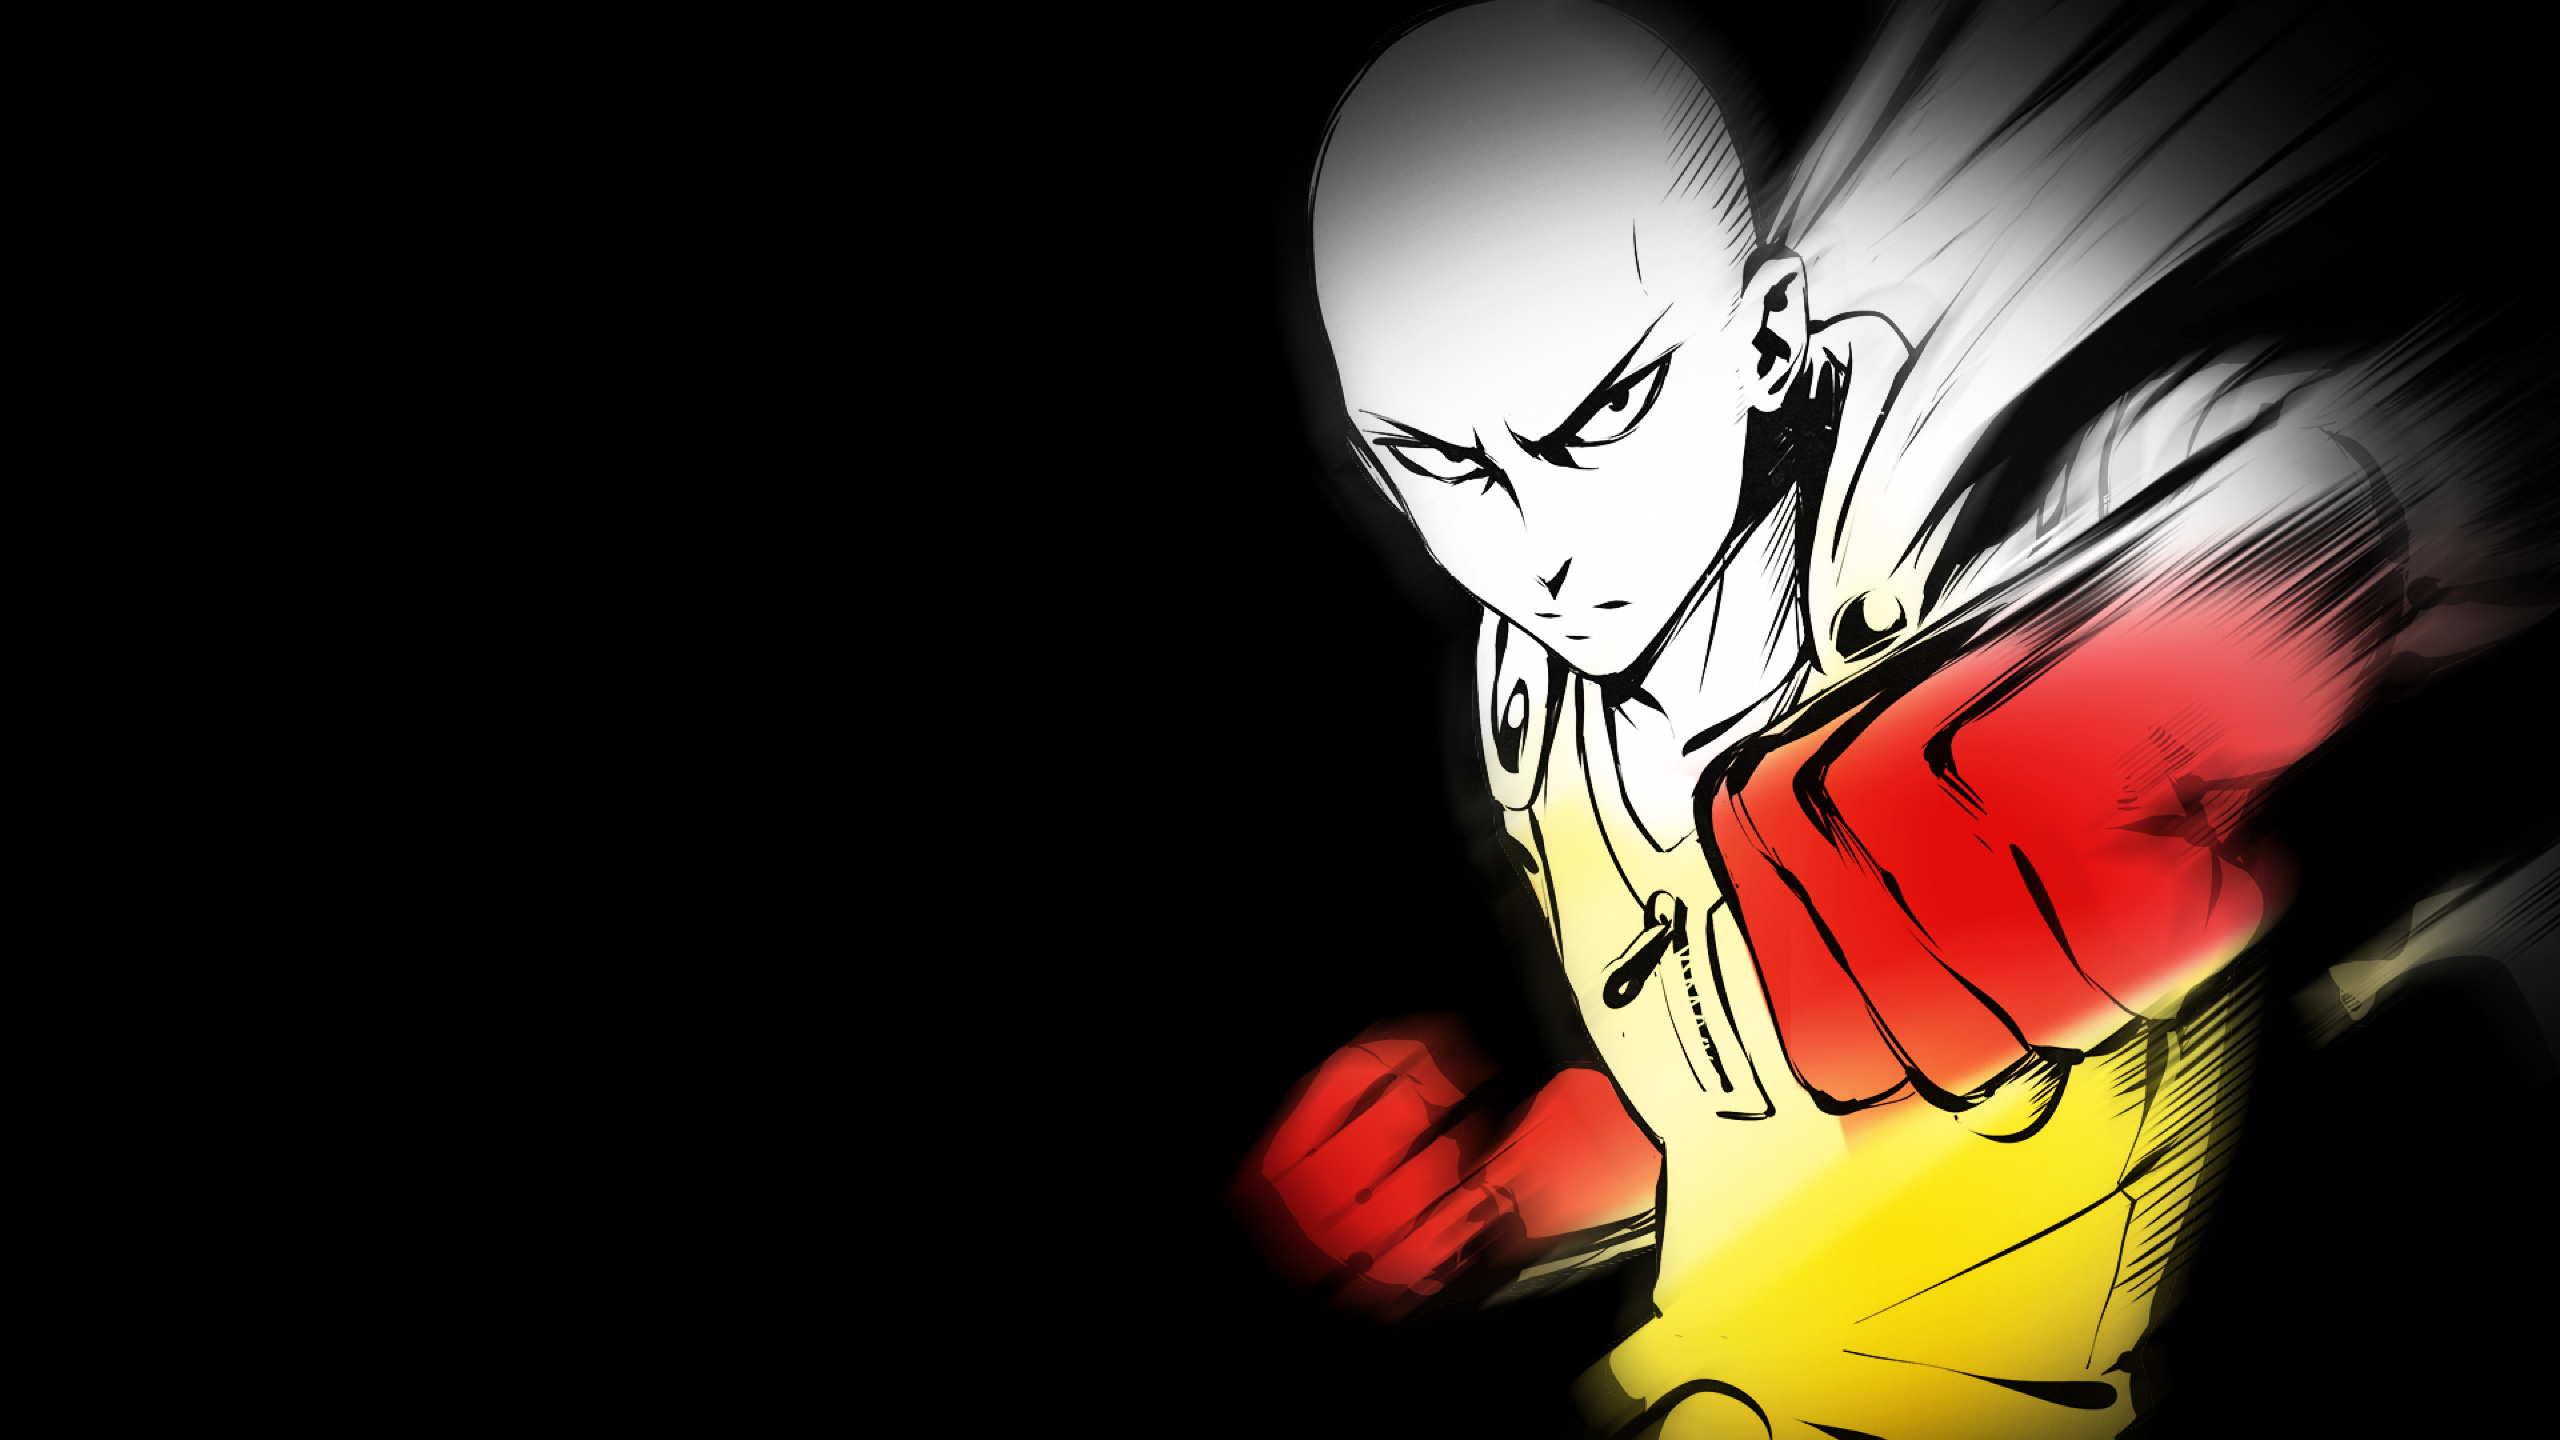 2560x1440 One Punch Man Saitama 1440p Resolution Wallpaper Hd